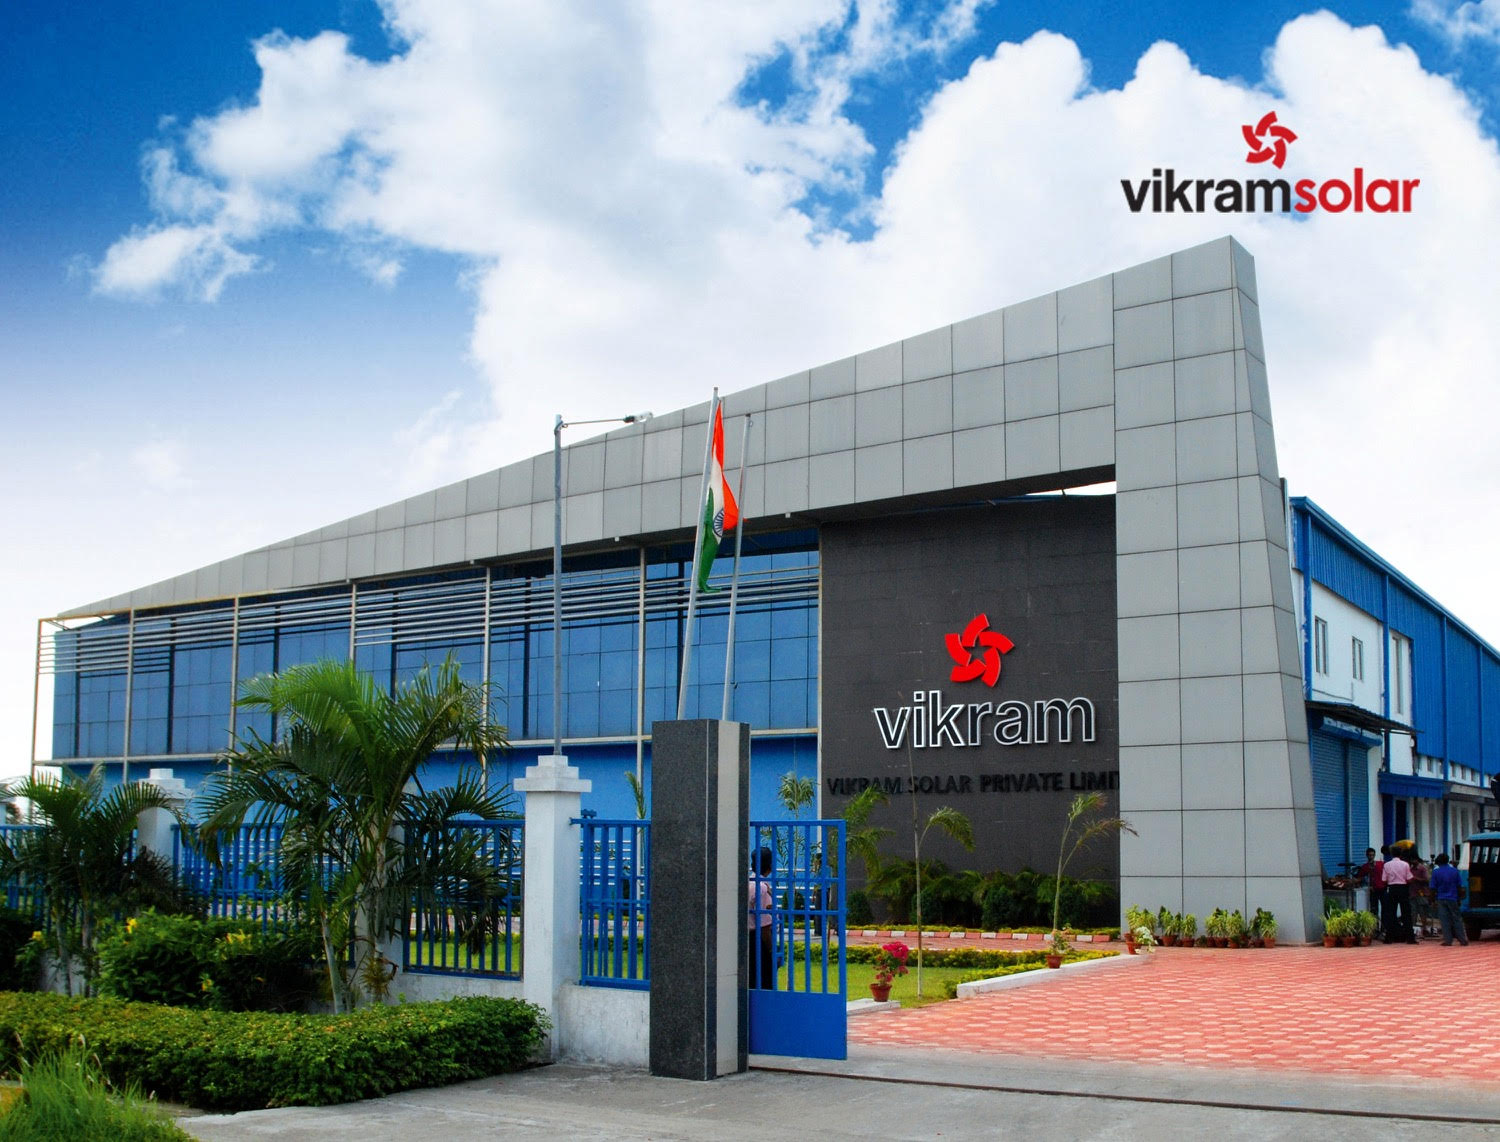 Vikram Solar achieved 'Top Performer' status in PVEL's '2020 PV Module Reliability Scorecard' for the third time and for the second consecutive year. Image: Vikram Solar